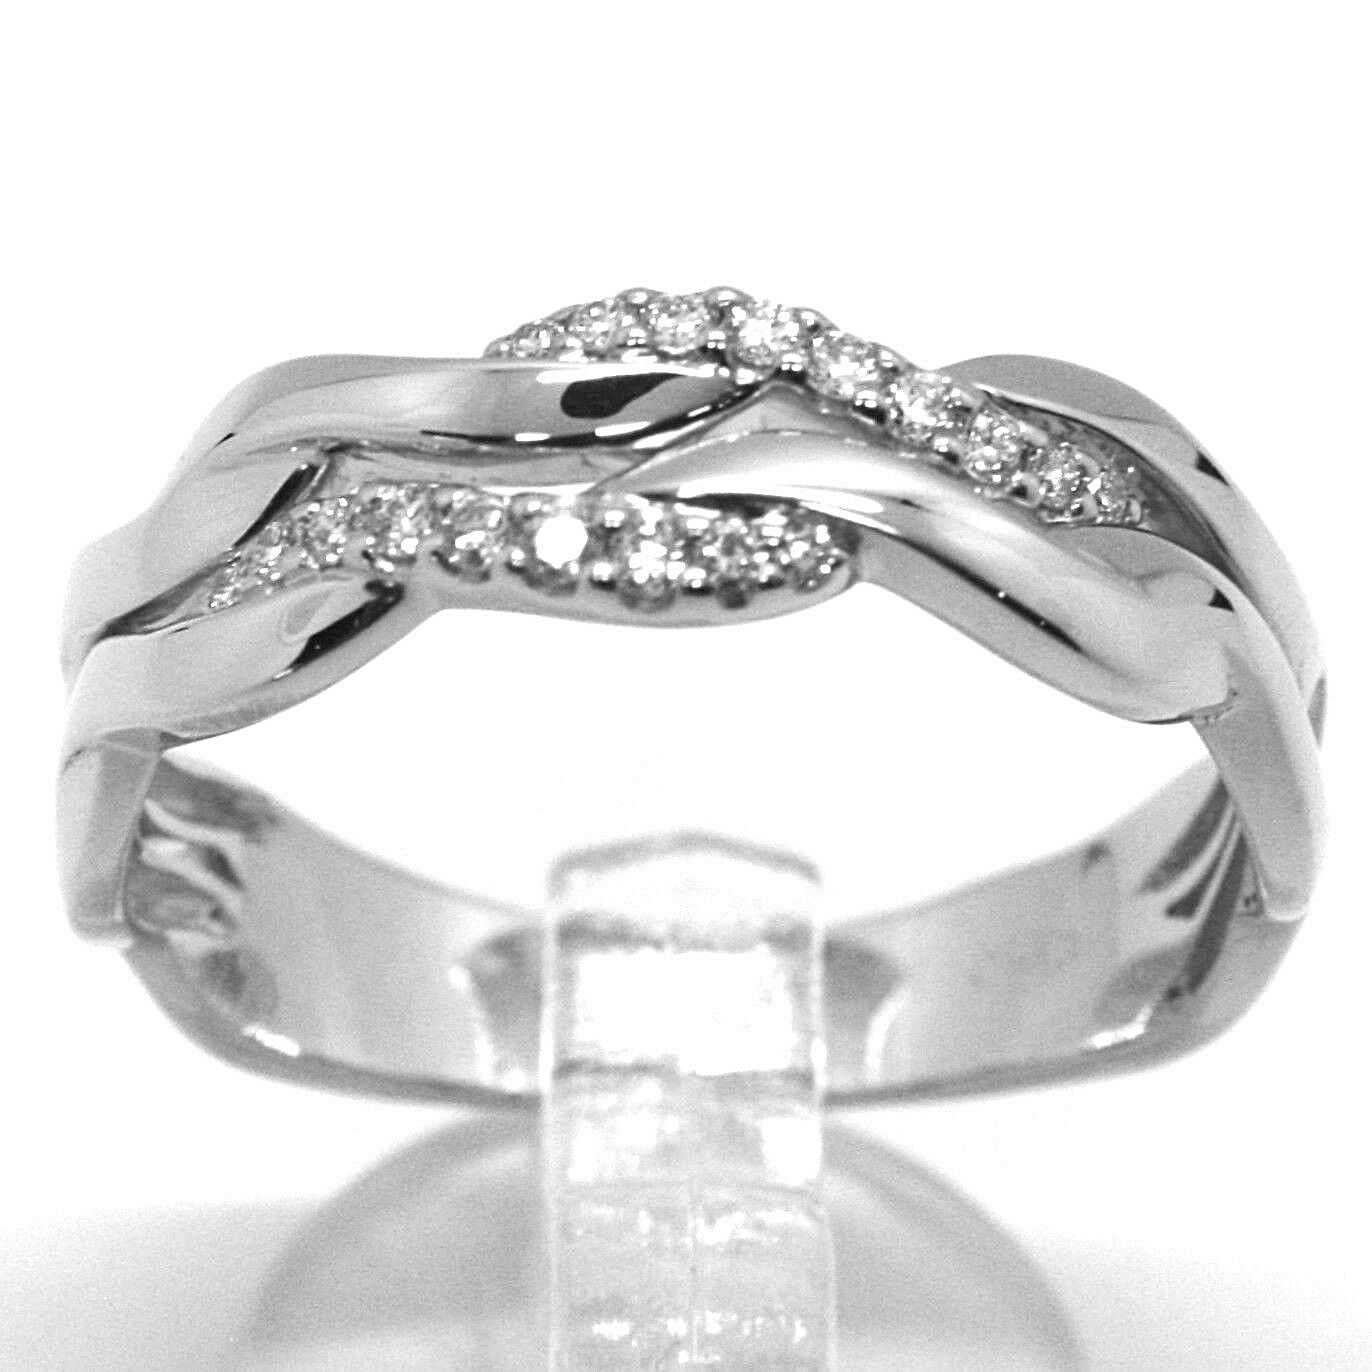 SOLID 18K WHITE GOLD BAND RING, DIAMONDS CT 0.16, WAVE, ONDULATE, BRAID